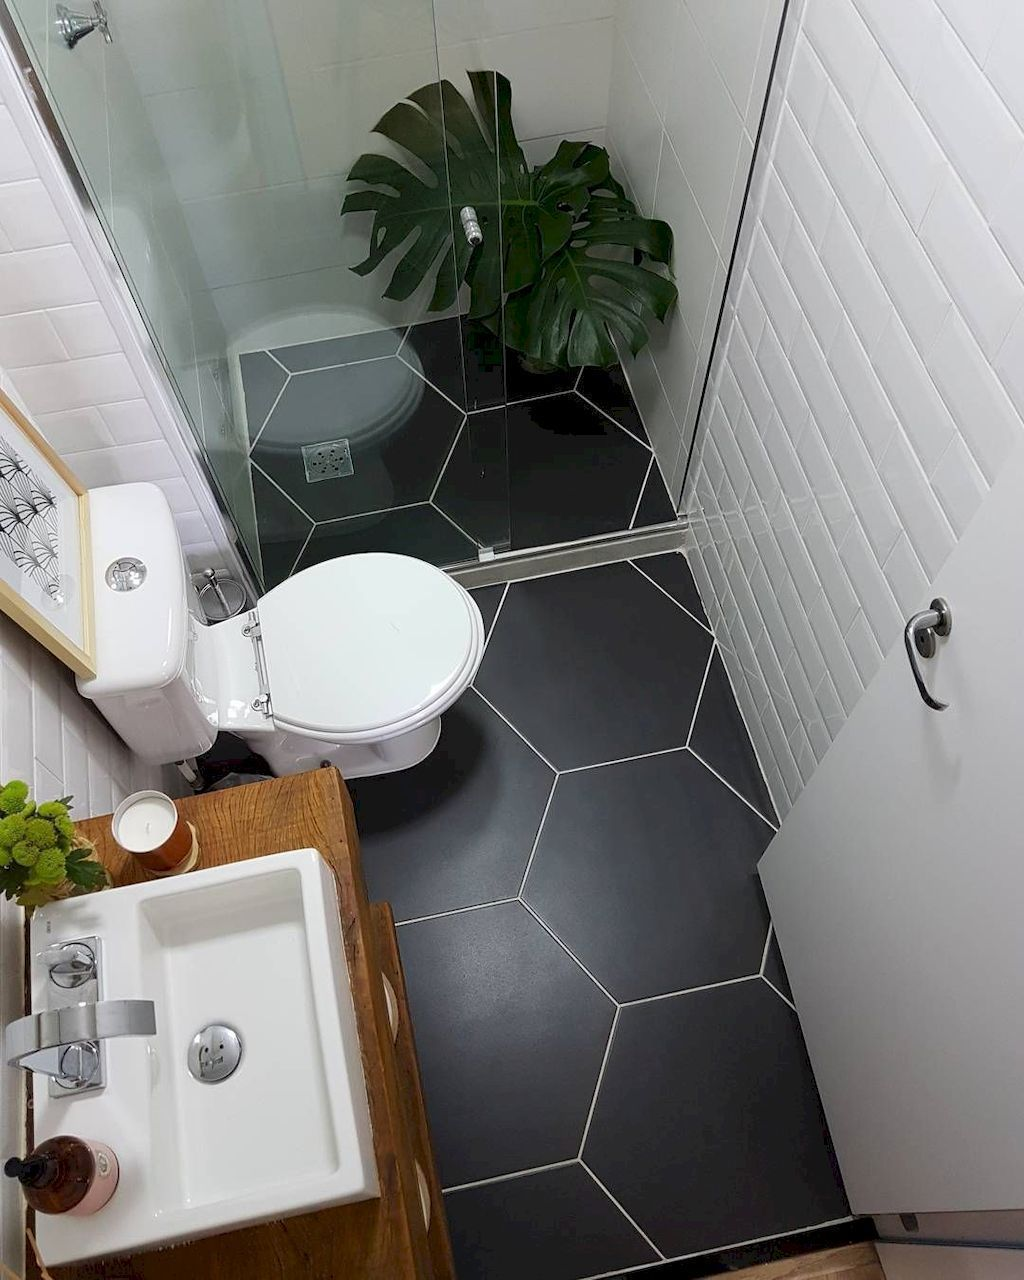 80 Amazing Tiny House Bathroom Shower Ideas Homespecially Tinyhousebathroom One Of The Bigge In 2020 Small Bathroom With Shower Small Bathroom Bathroom Design Small